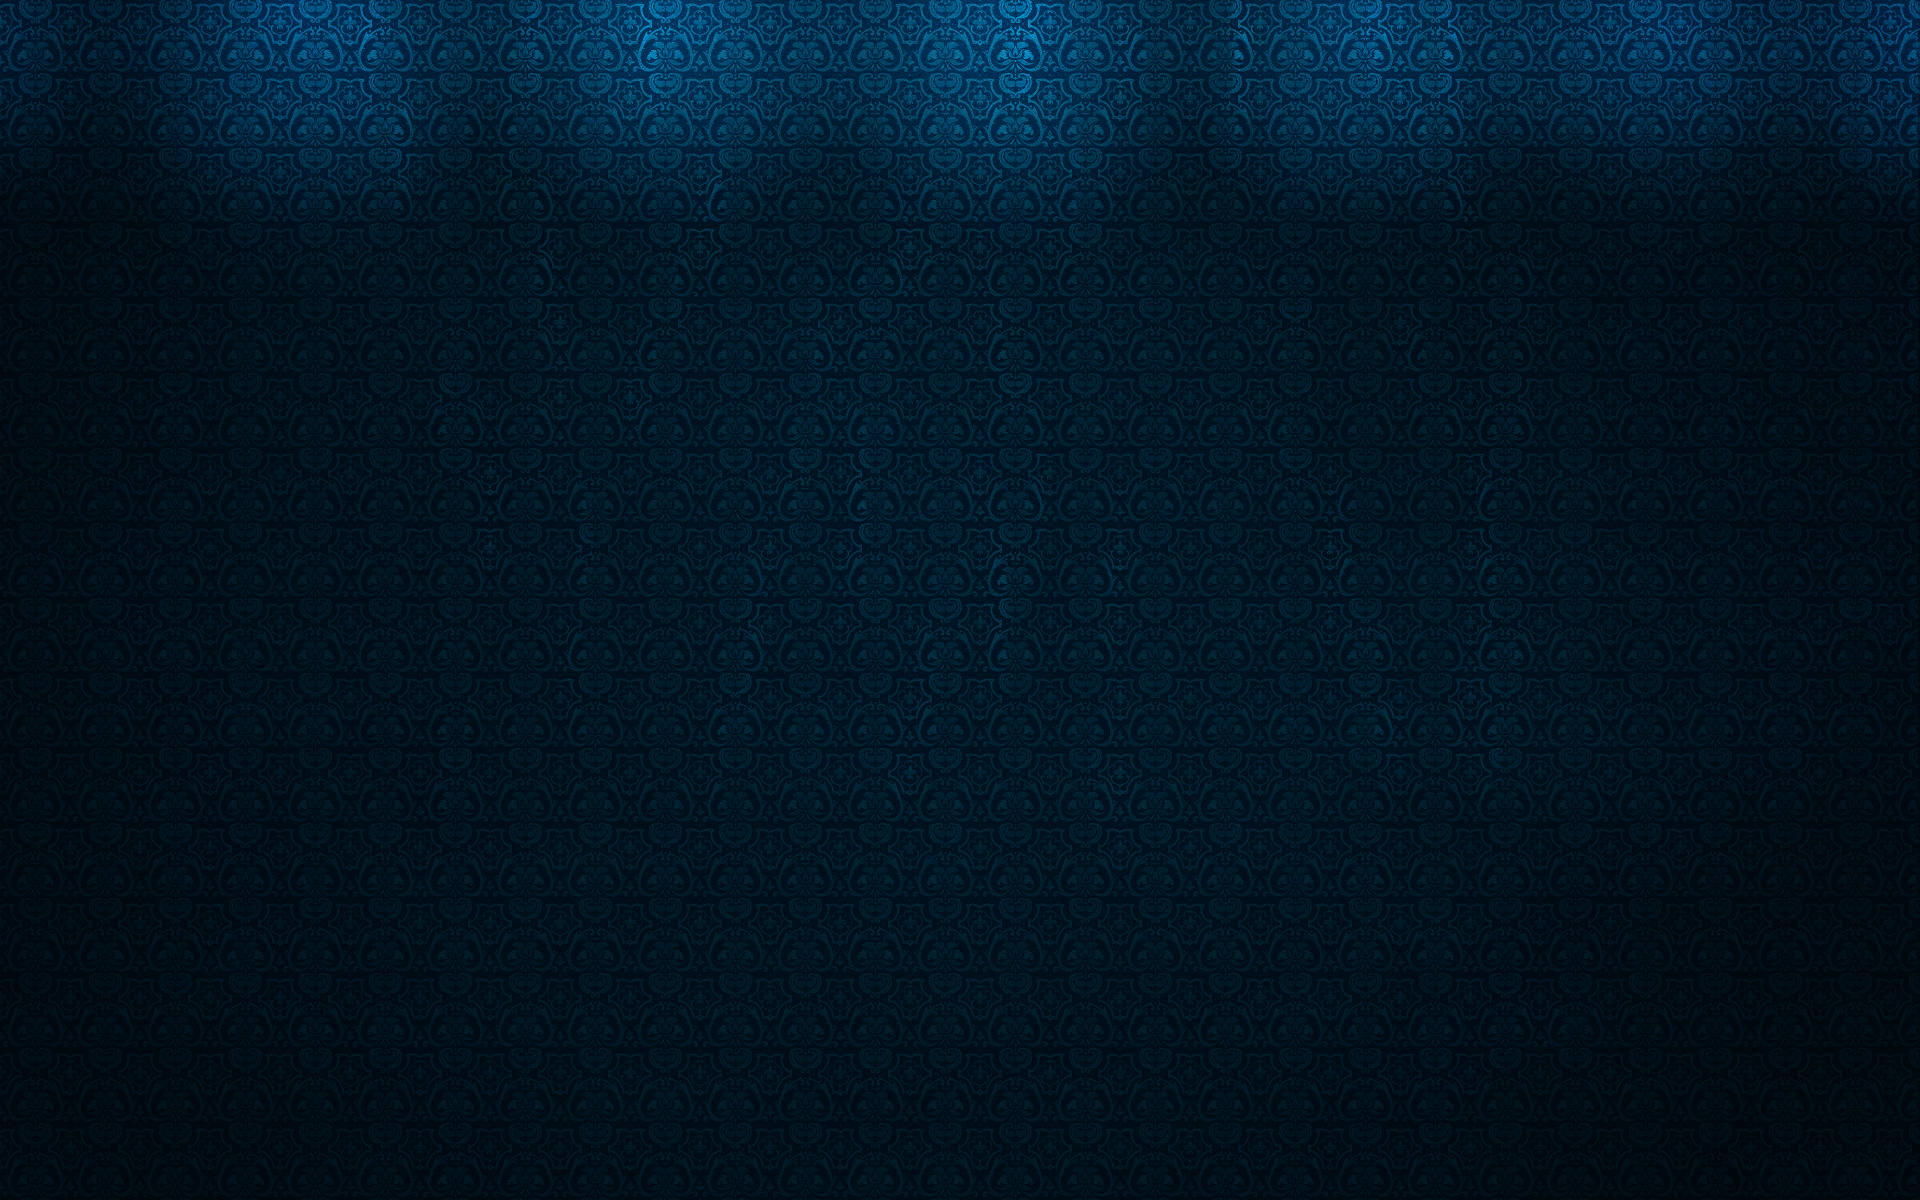 Blue Dark Desktop Wallpaper Noir In Hd 1920x1200